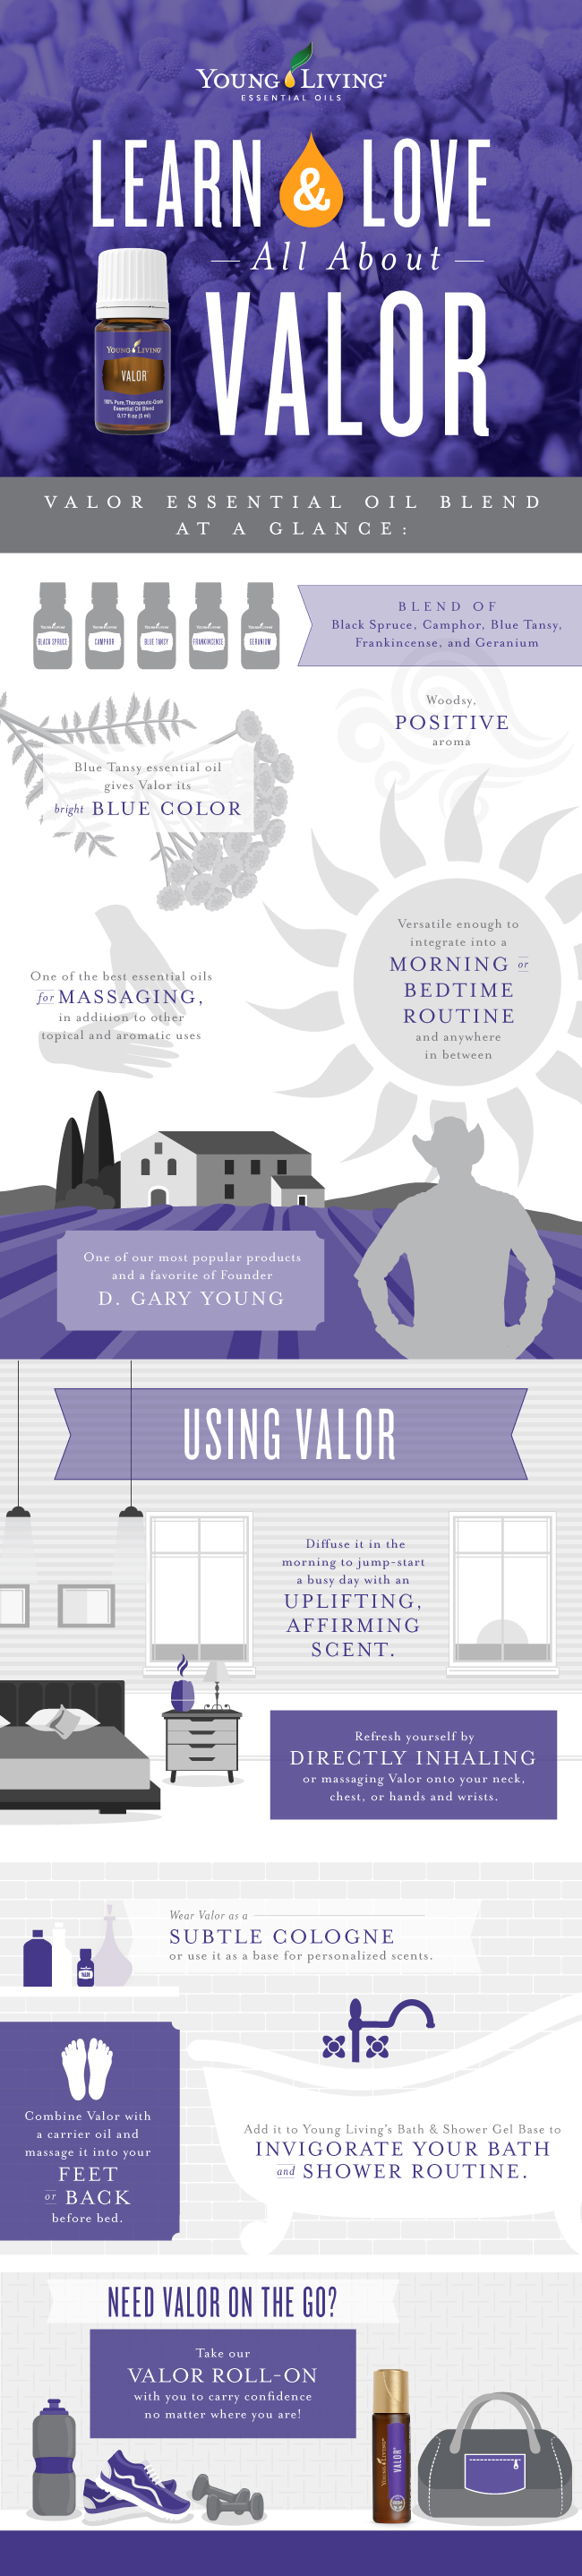 blog-Learn-Love-All-About-Valor-Infographic-Update_Infographic_US_v4-3-UPDATE